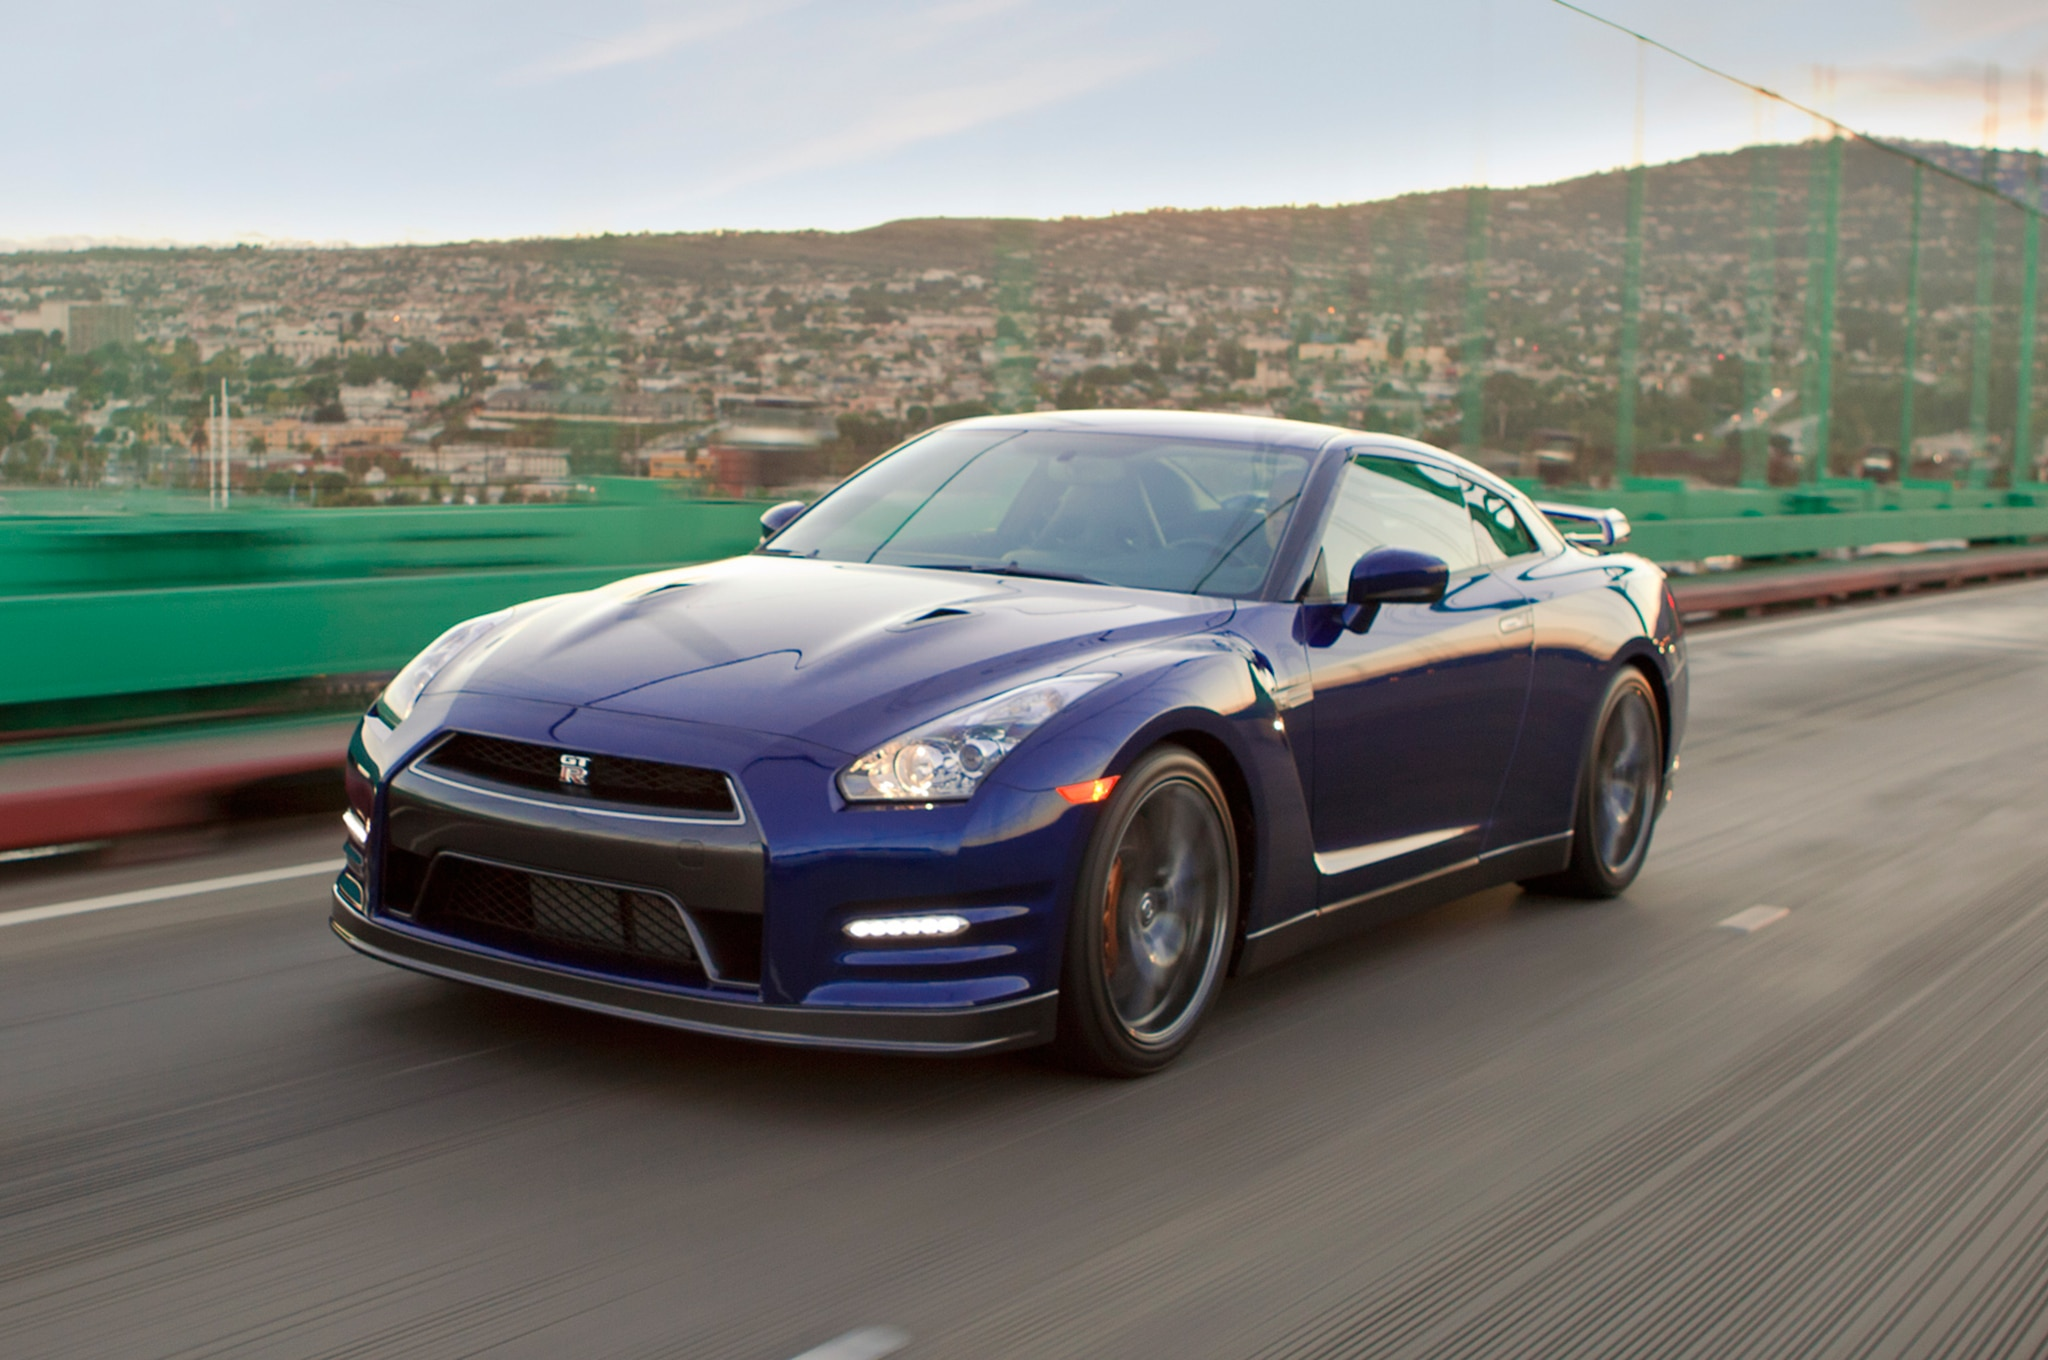 Constant Refresh: A Look at the Nissan GT-R from 2009 to 2013